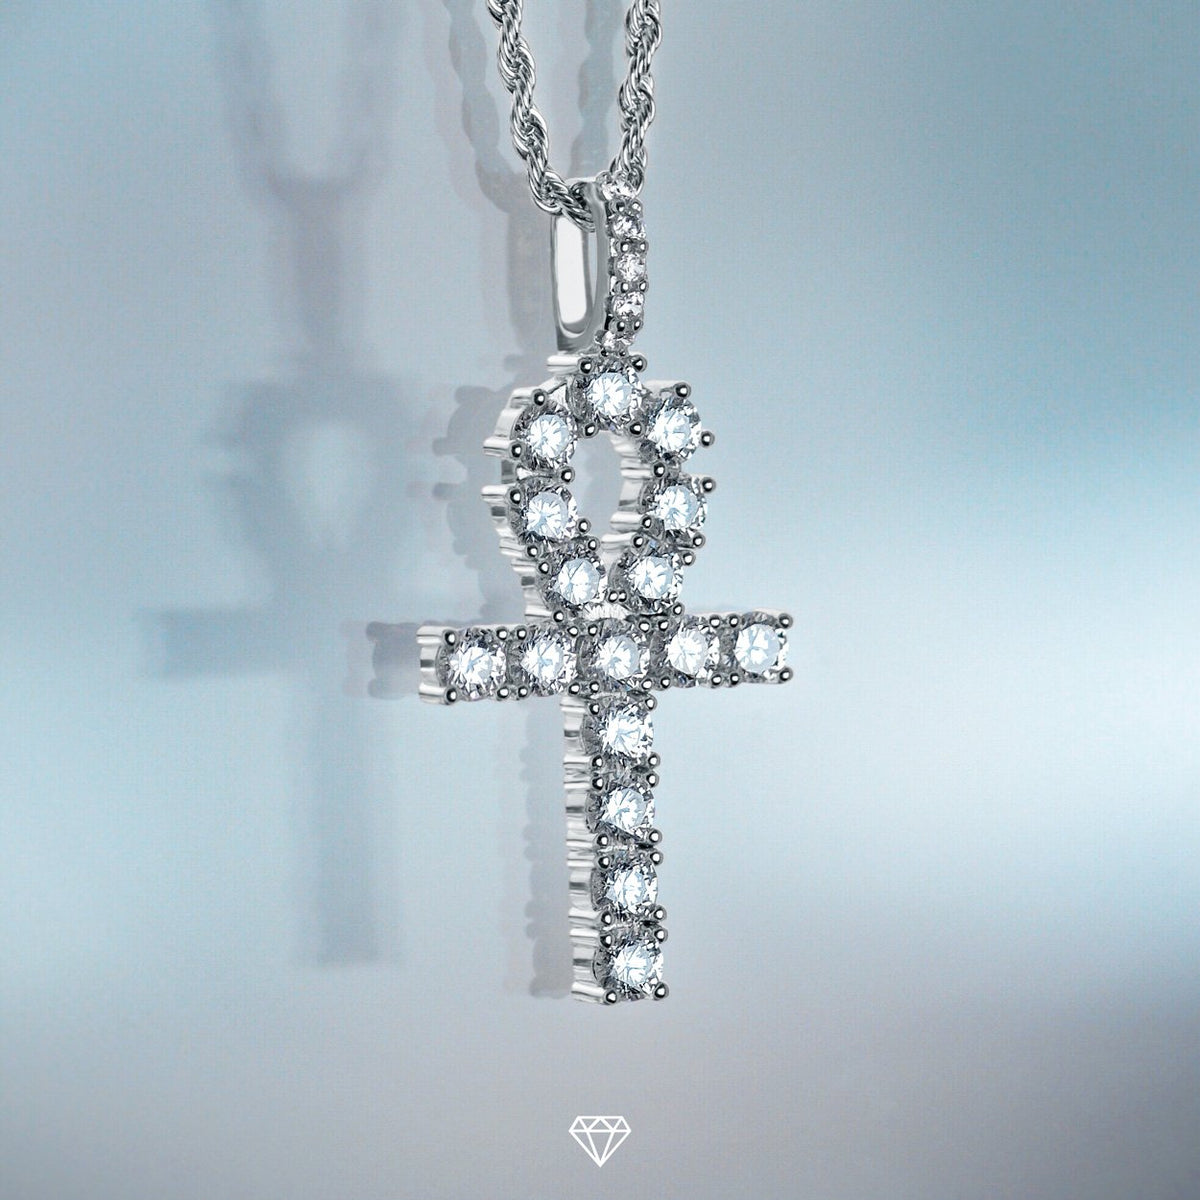 DIAMOND ANKH PENDANT IN WHITE GOLD